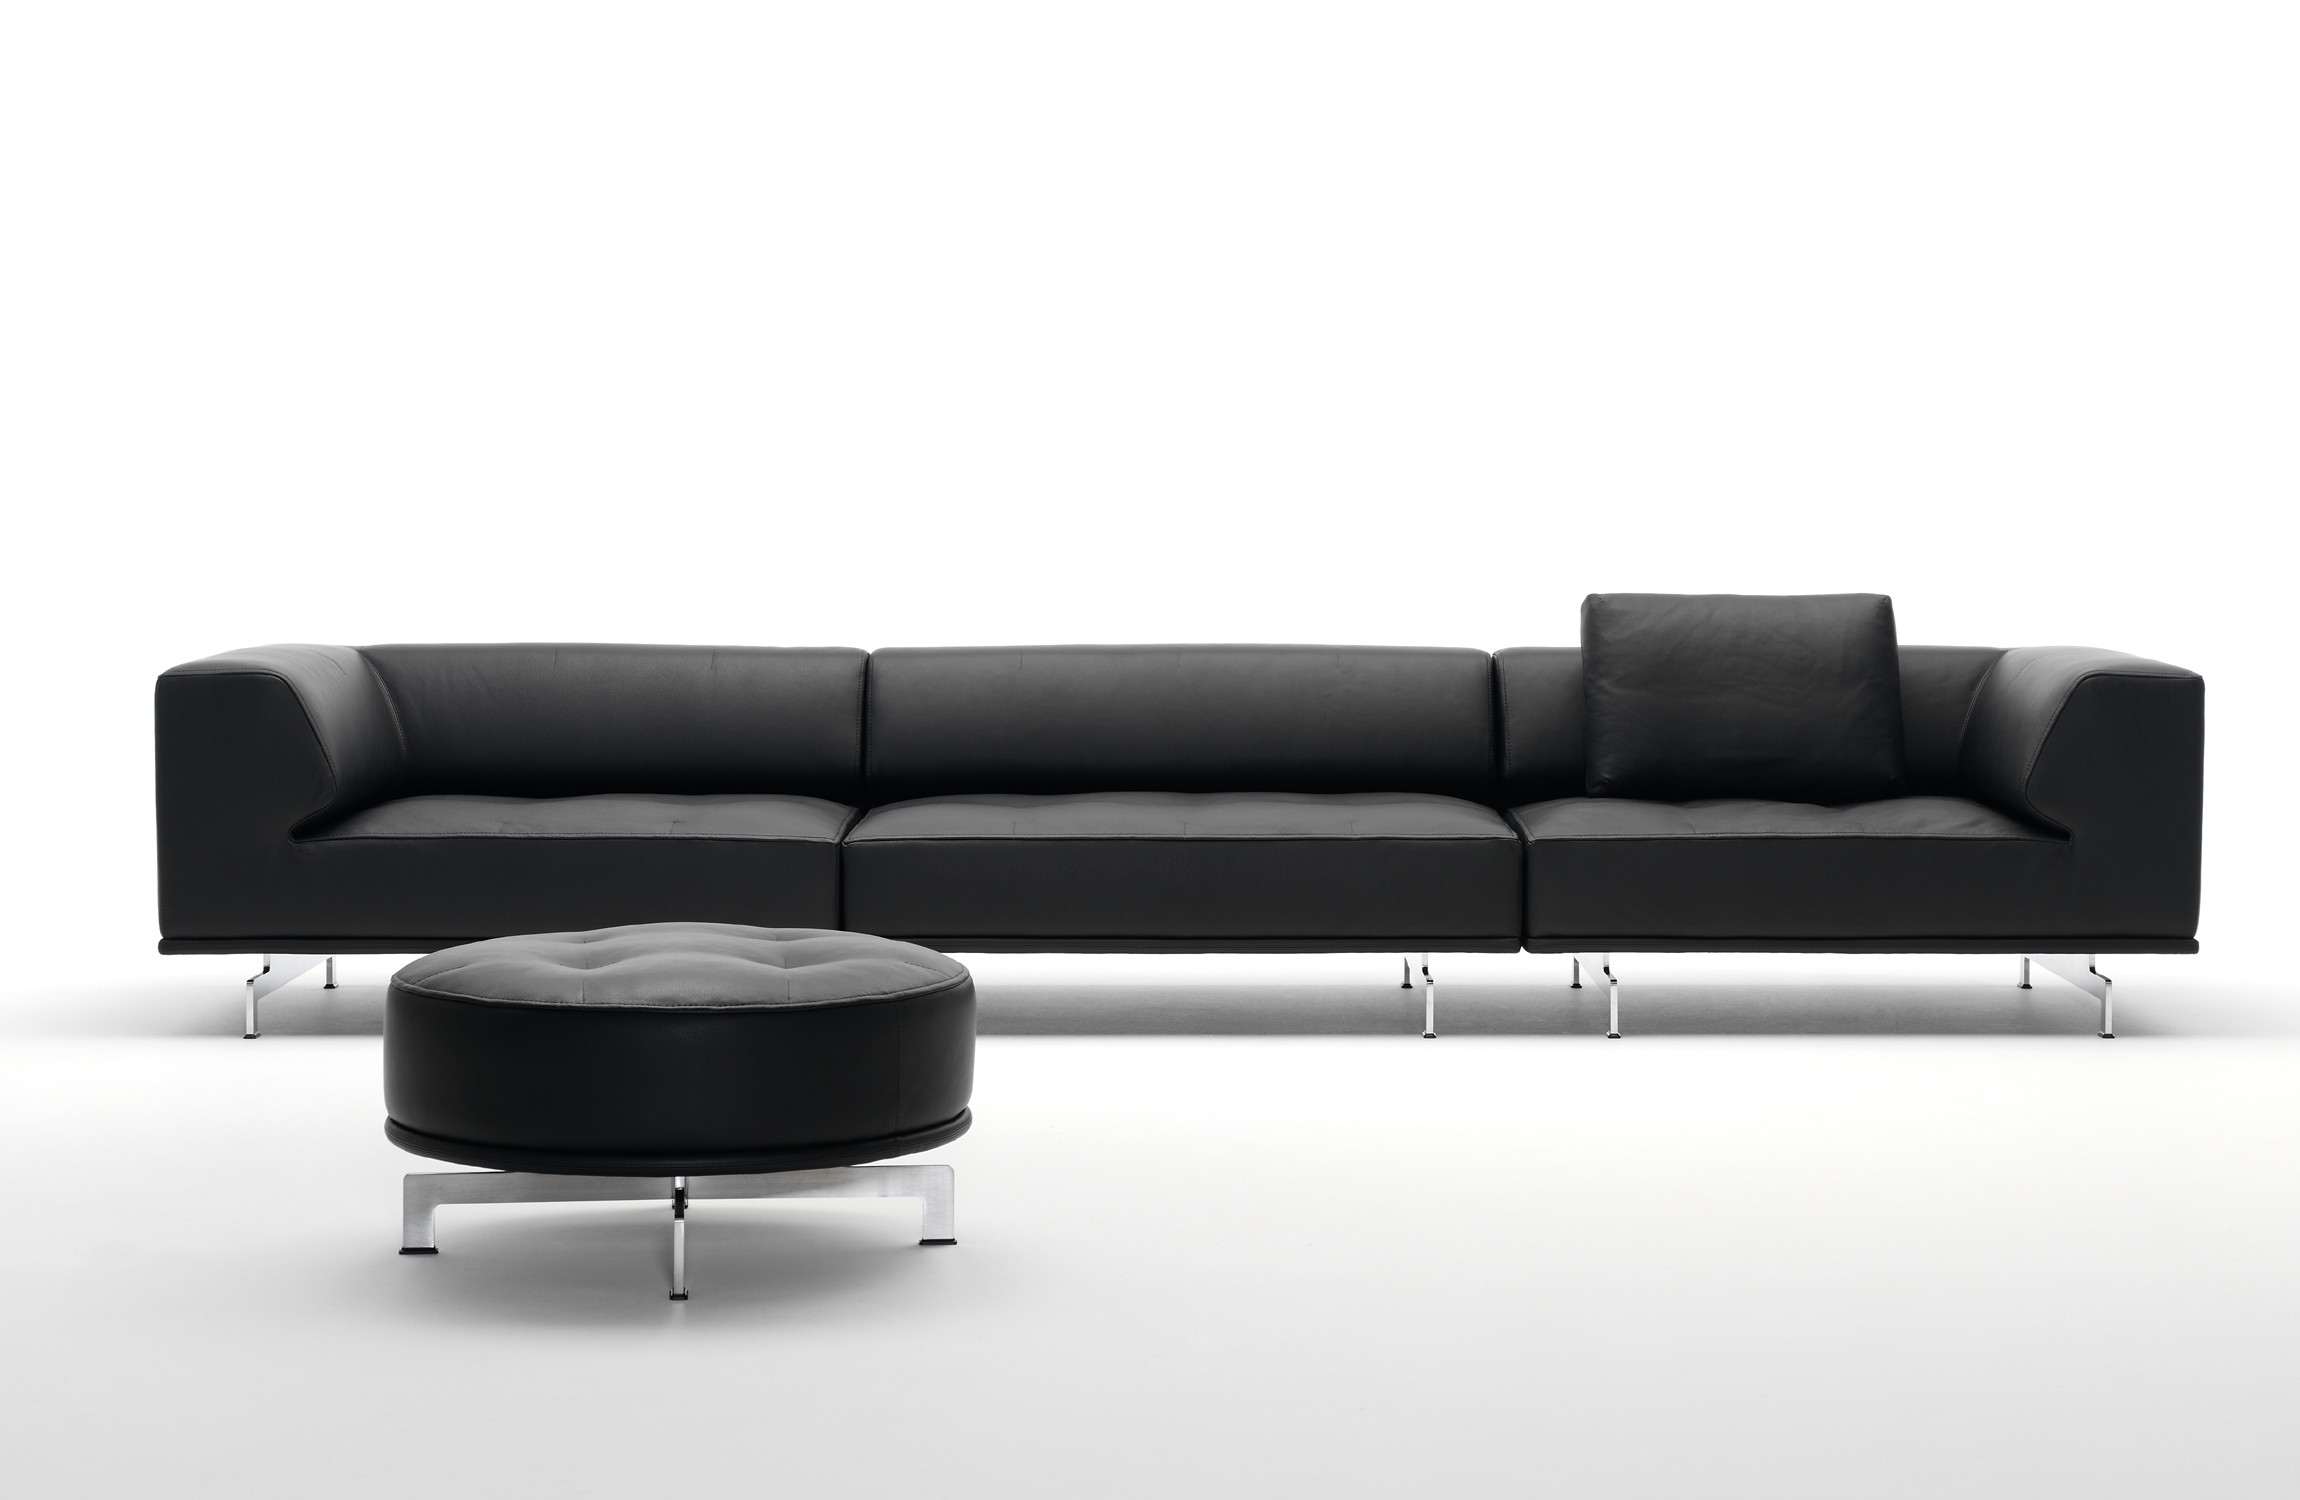 EJ 450 Delphi Sofa and Pouffe